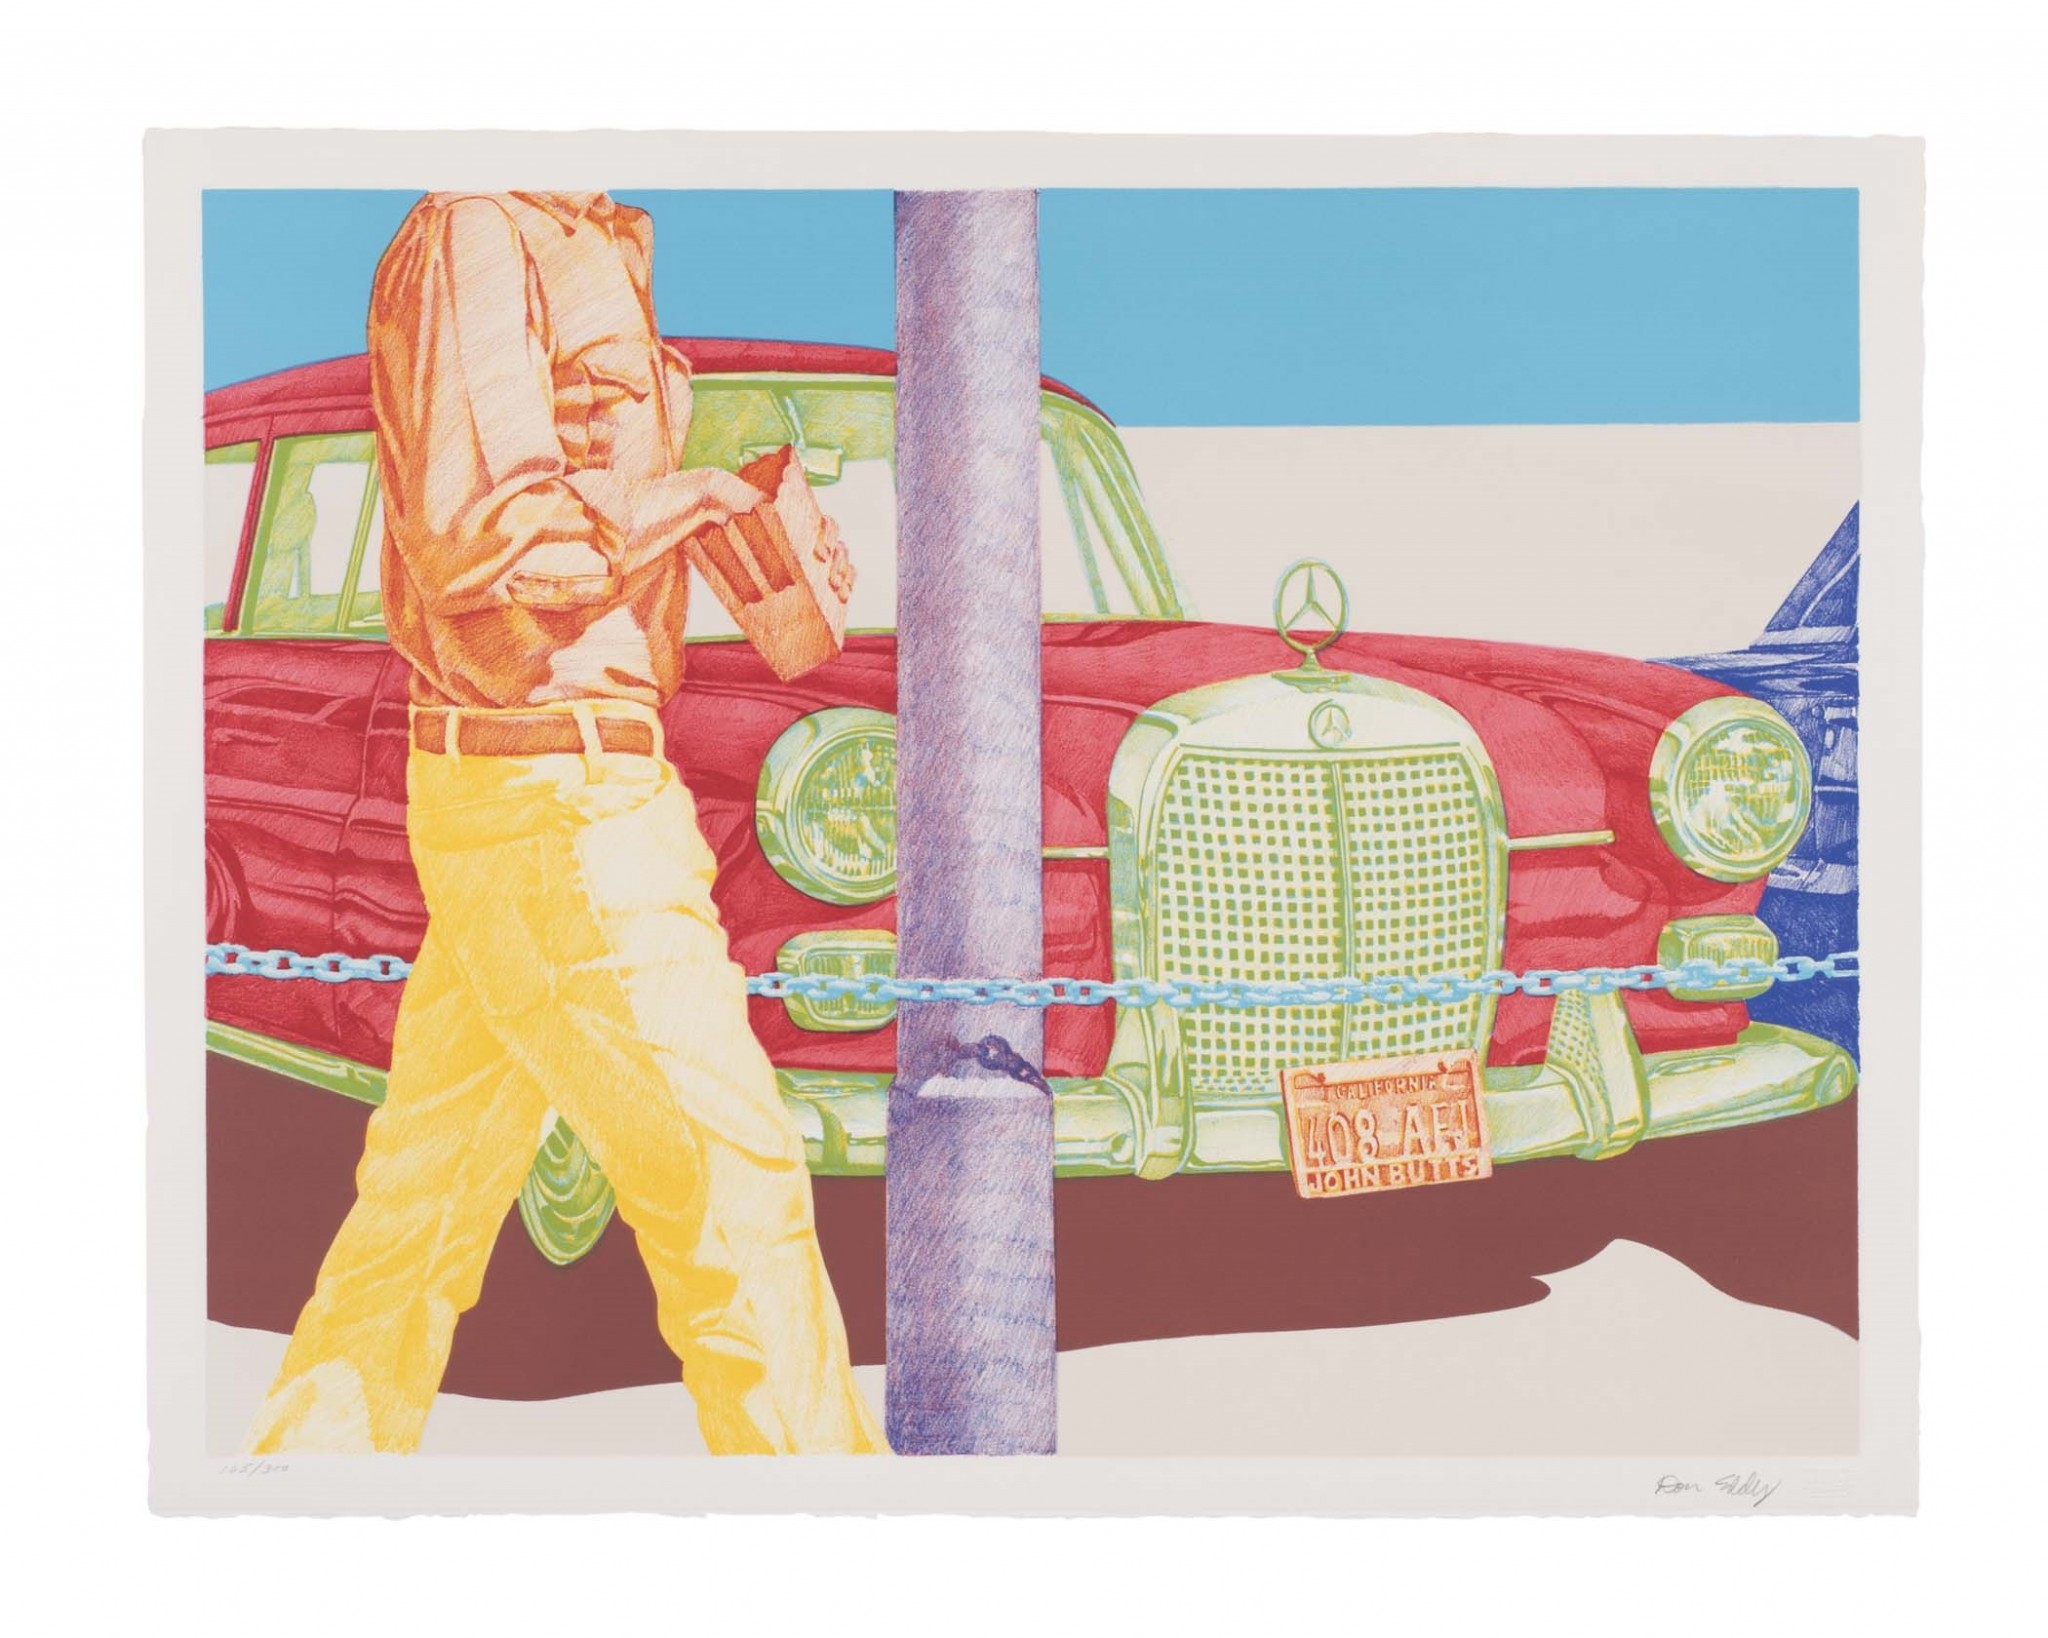 """Don Eddy's color lithograph, """"Red Mercedes"""" is among the works featured in the Toledo Museum of Art exhibition, """"Life Is a Highway: Art and American Car Culture,"""" which closes Sept. 15. (Image credit: Christopher Ridgway)"""